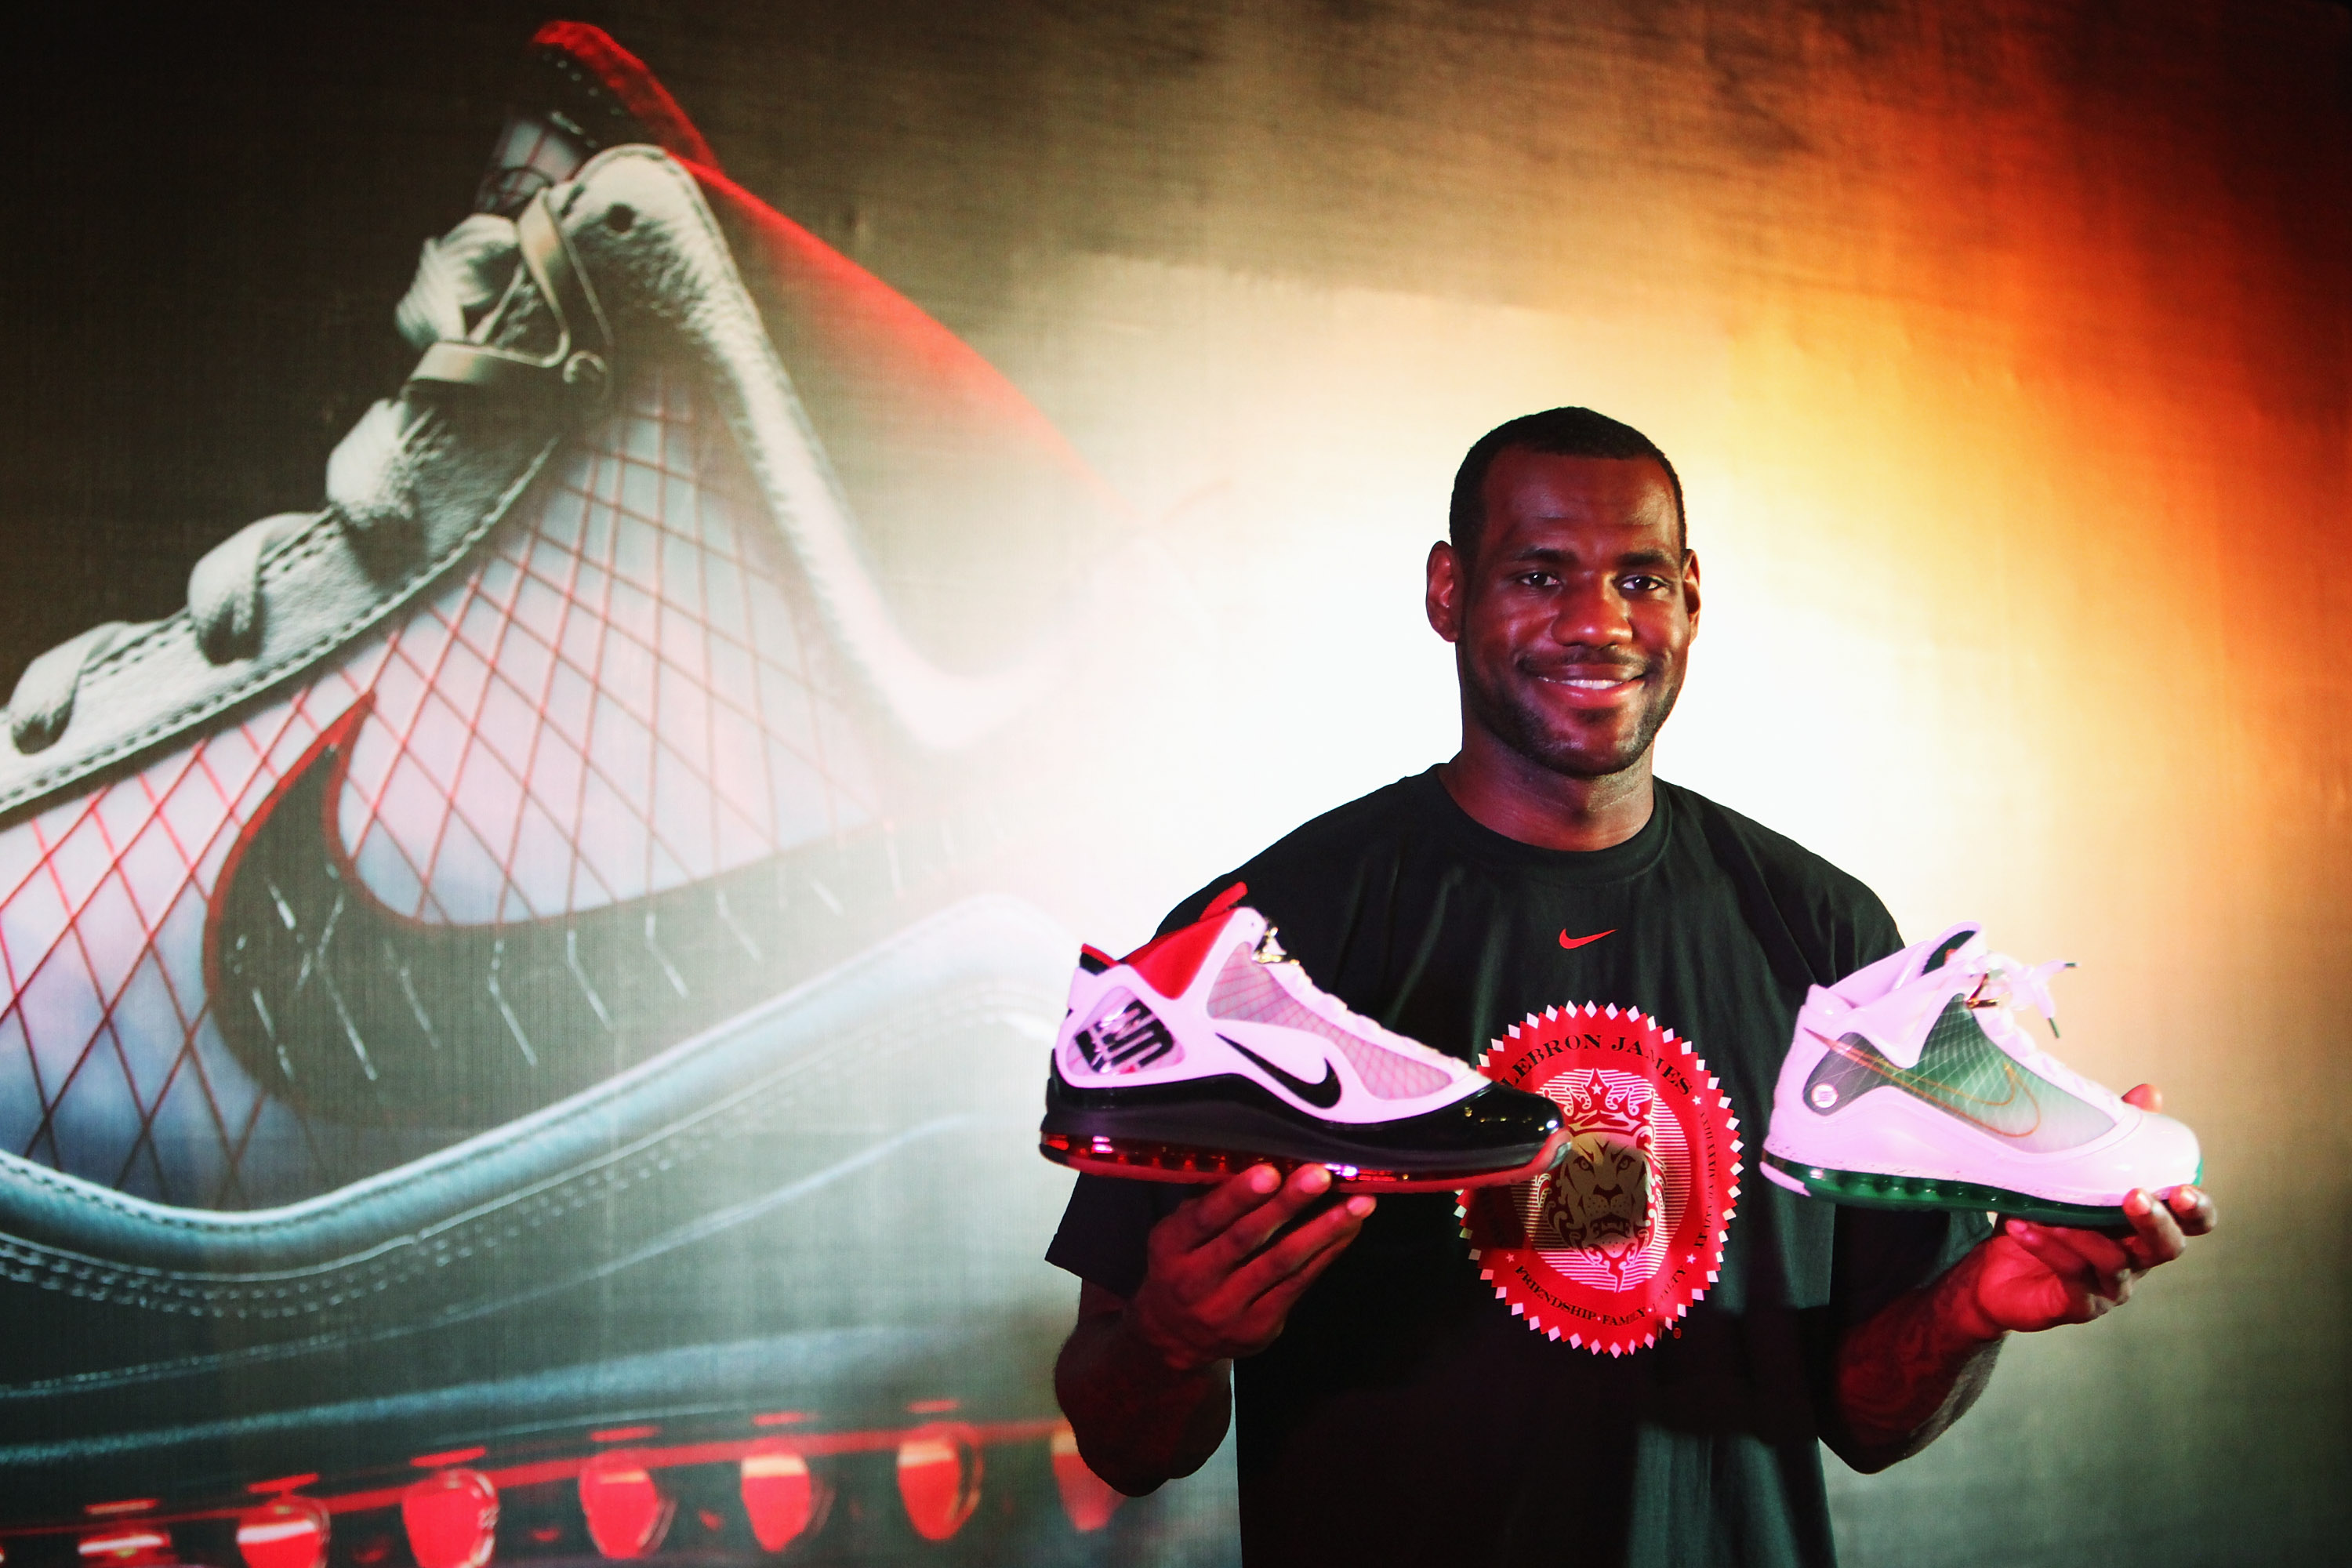 BEIJING - AUGUST 24:  LeBron James of the Cleveland Cavaliers shows the new Nike shoes in a promotional event during a visit to China on August 24, 2009 in Beijing, China.  (Photo by Feng Li/Getty Images)